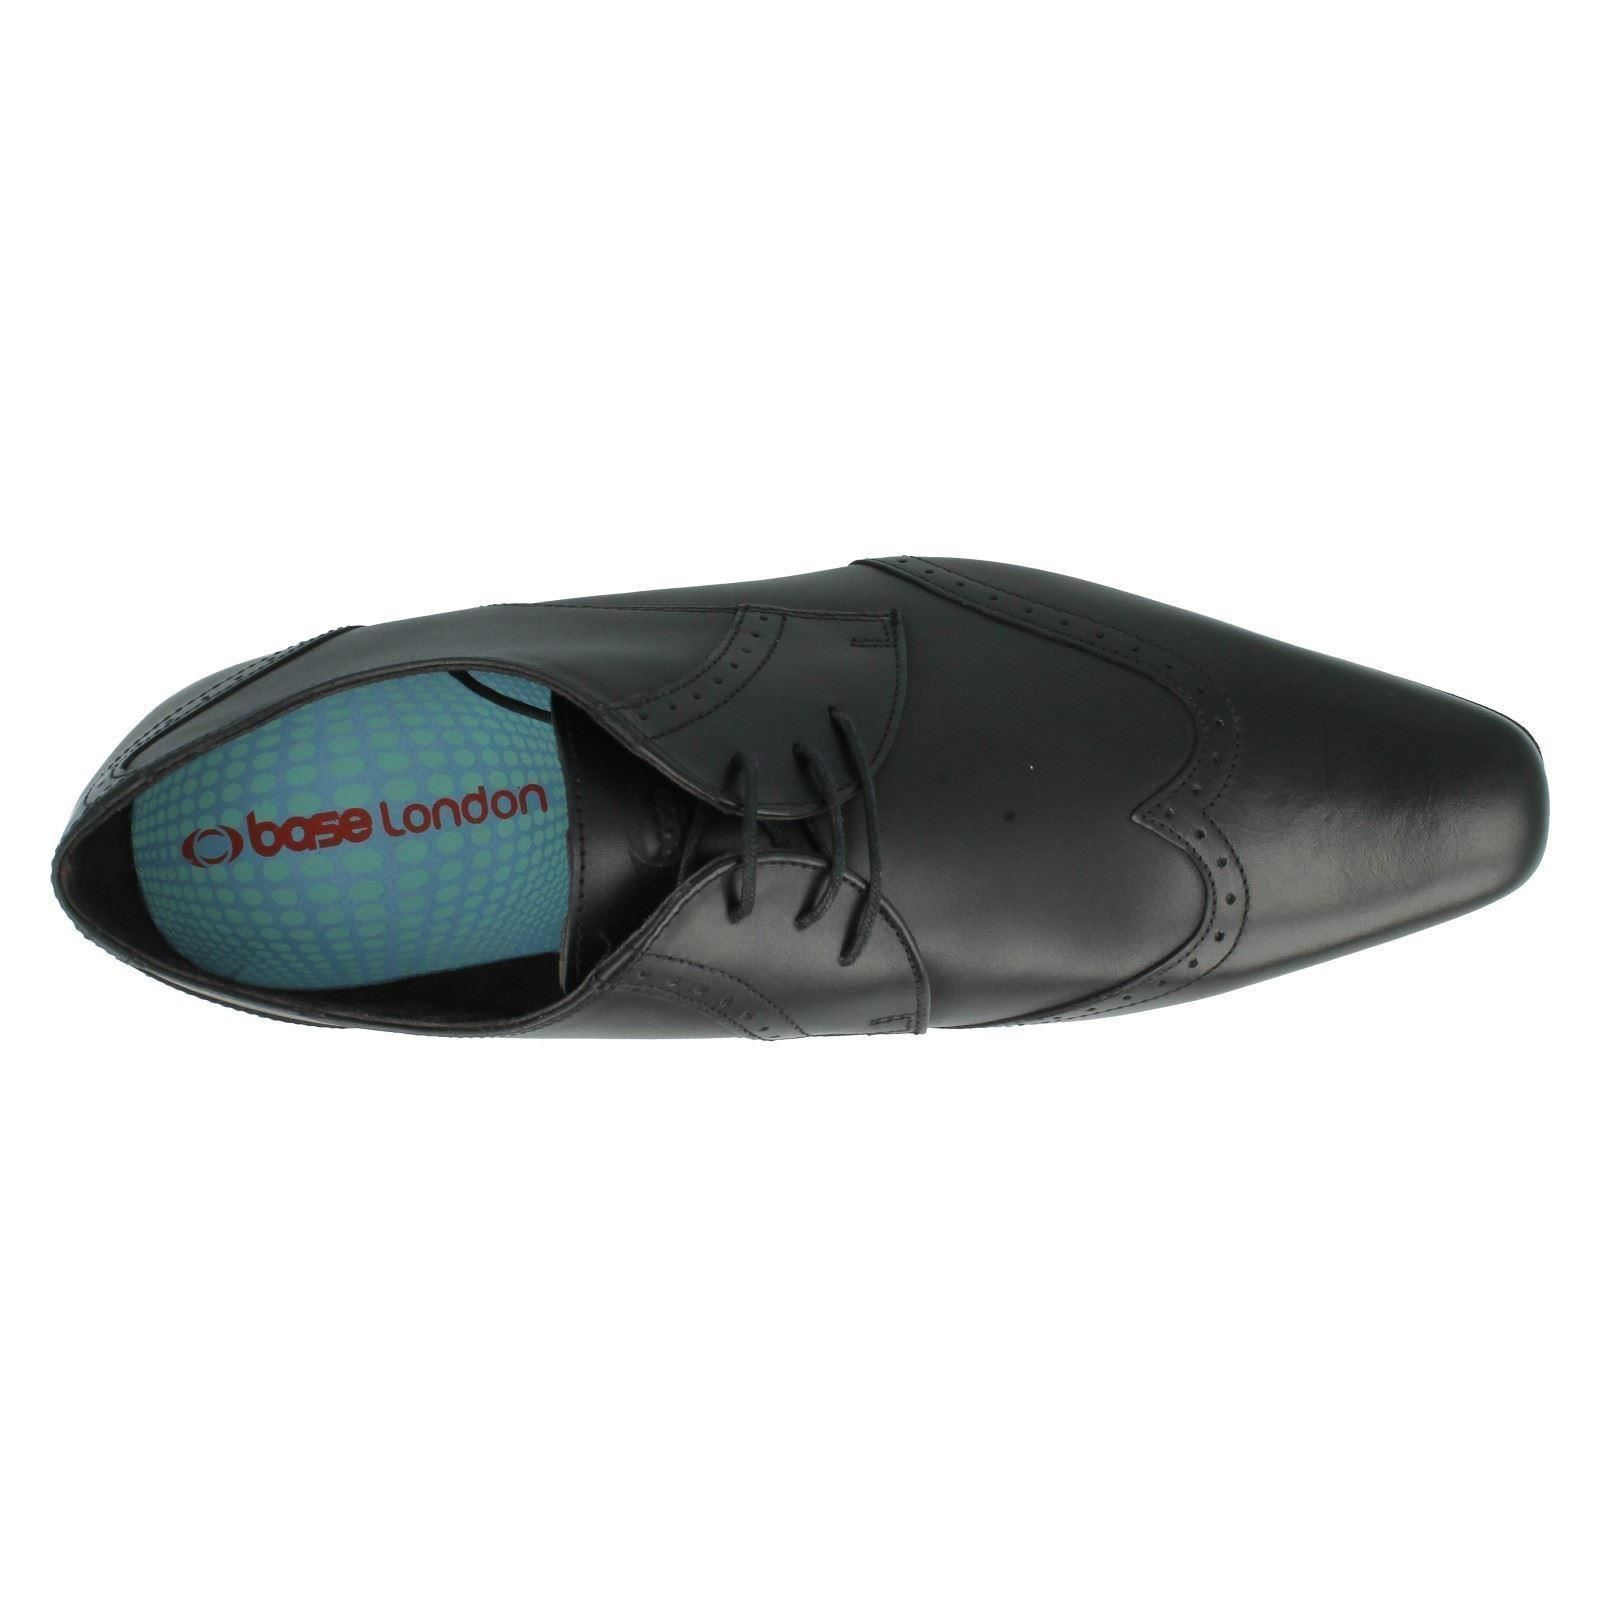 Mens Base London Formal Shoes Label - Bugsy MTO